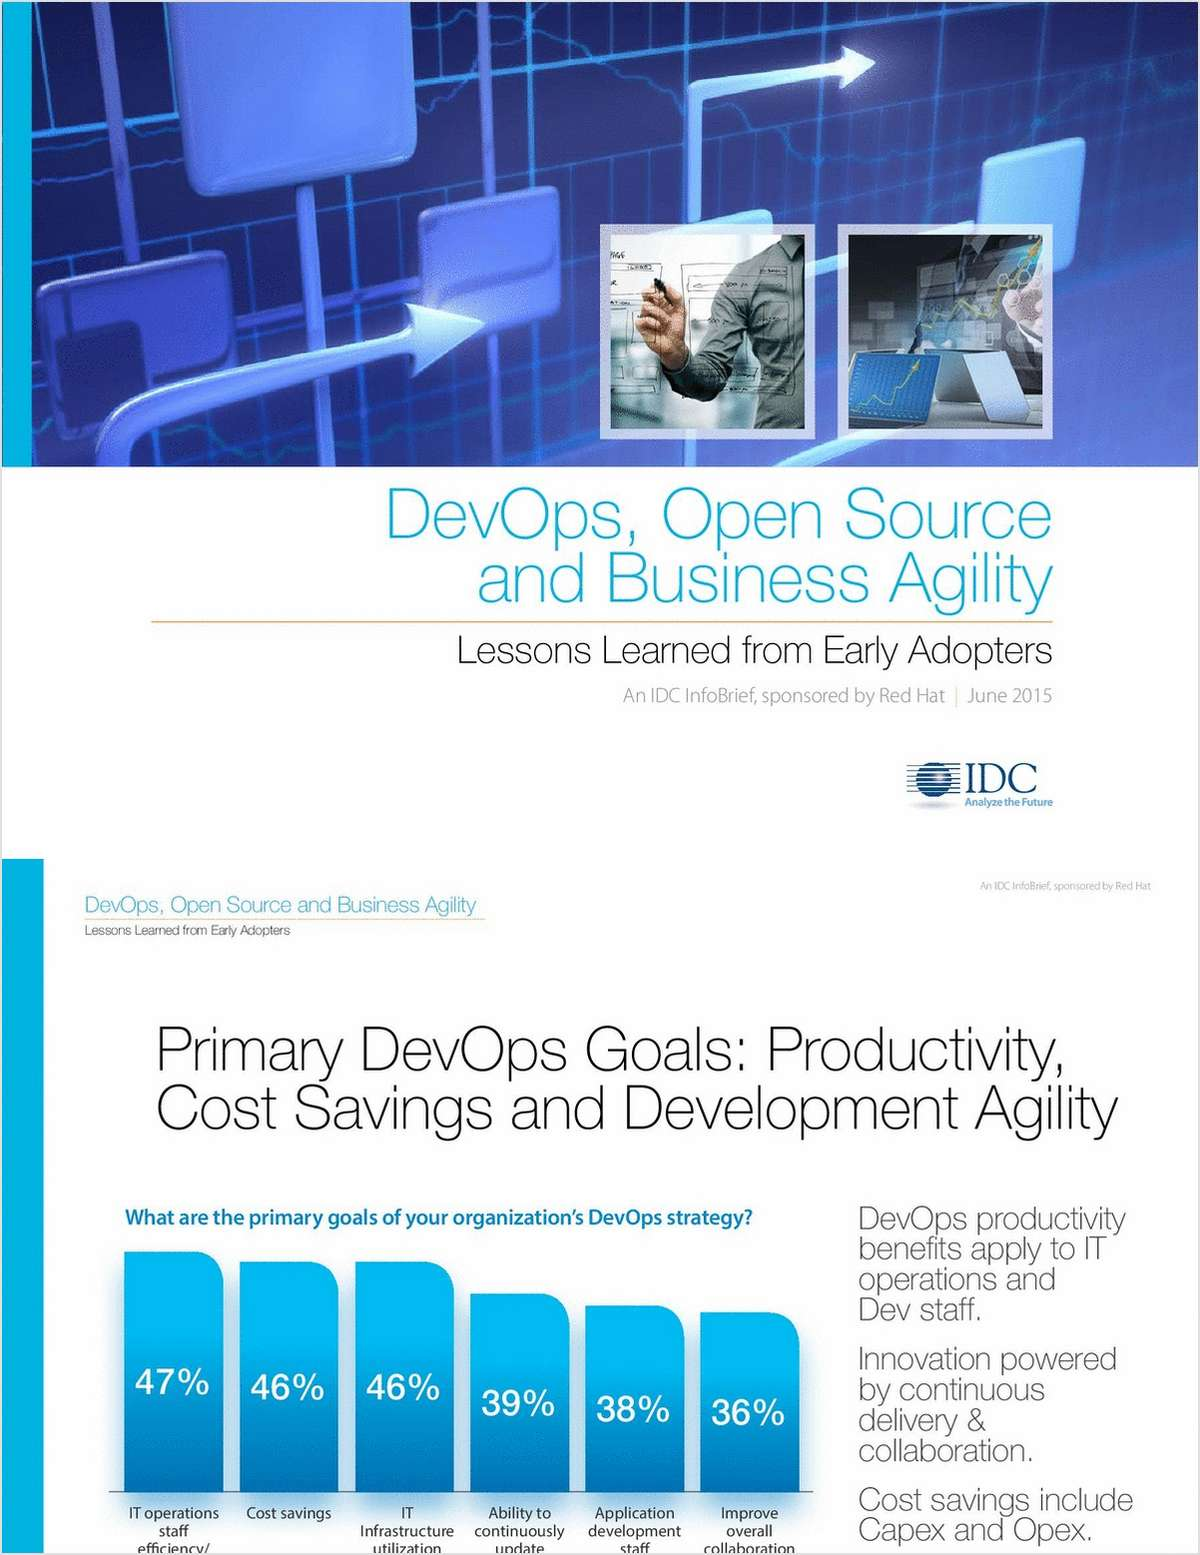 DevOps, Open Source and Business Agility - Lessons Learned from Early Adopters